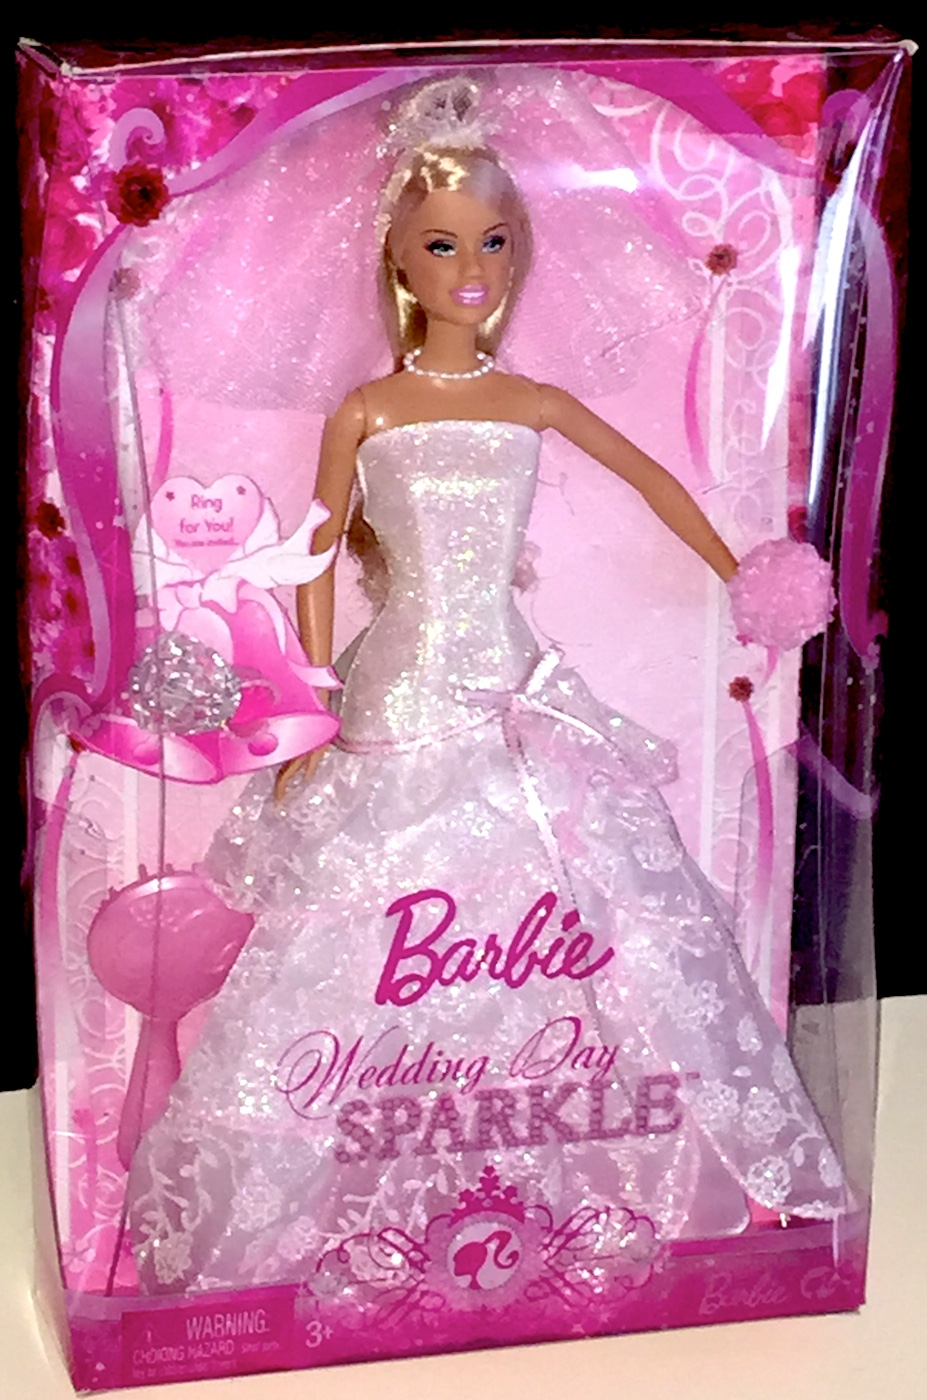 Barbie Doll Wedding Day Sparkle Plus Accessories